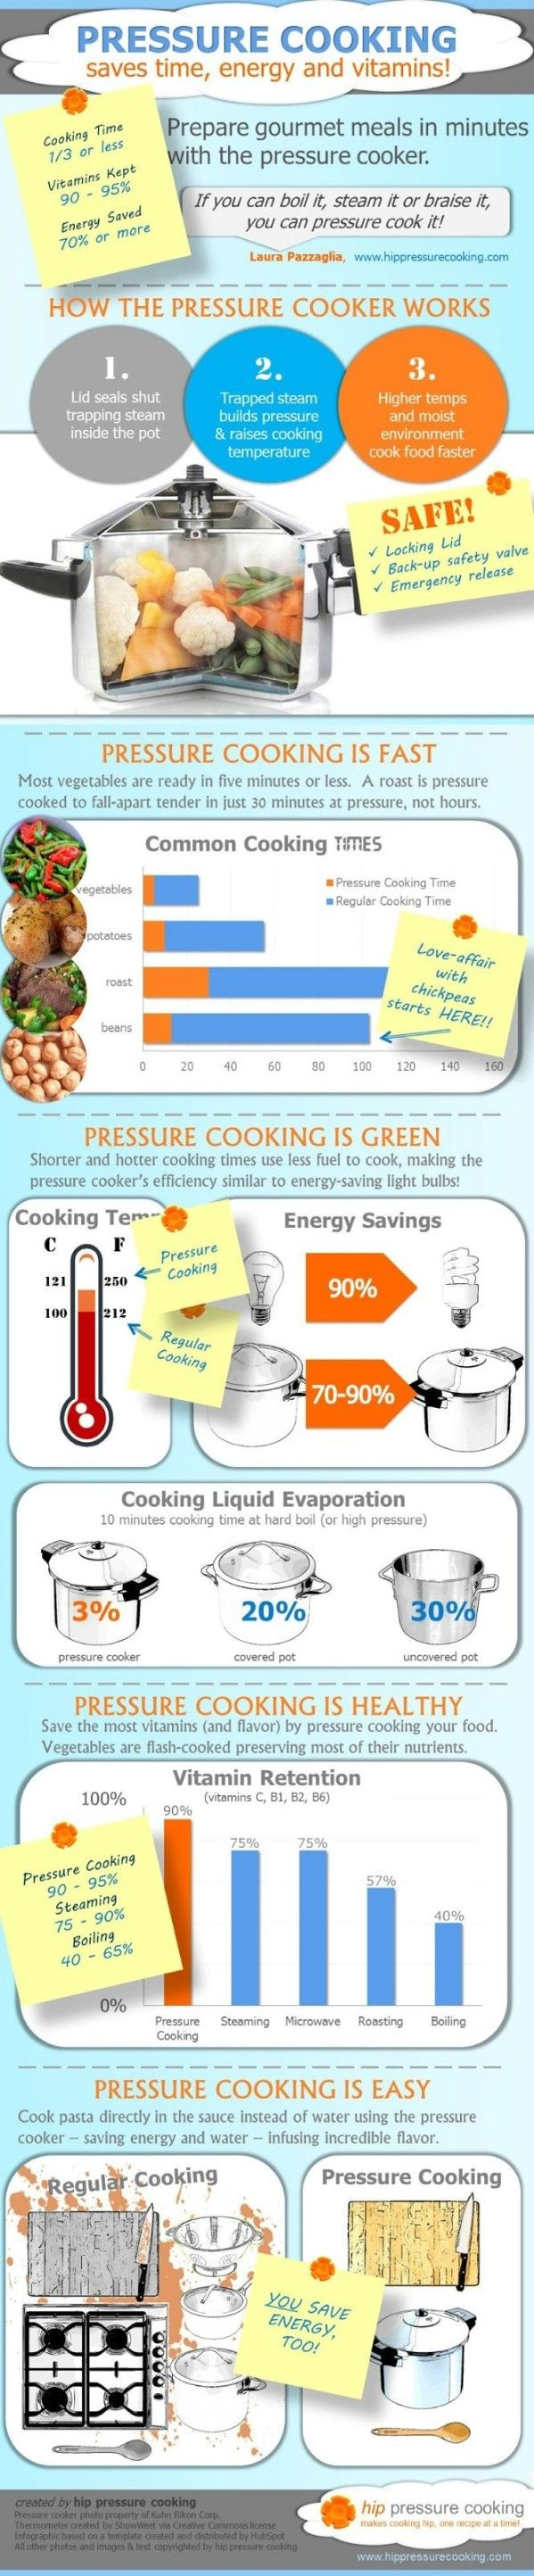 Pressure Cooker Infographic